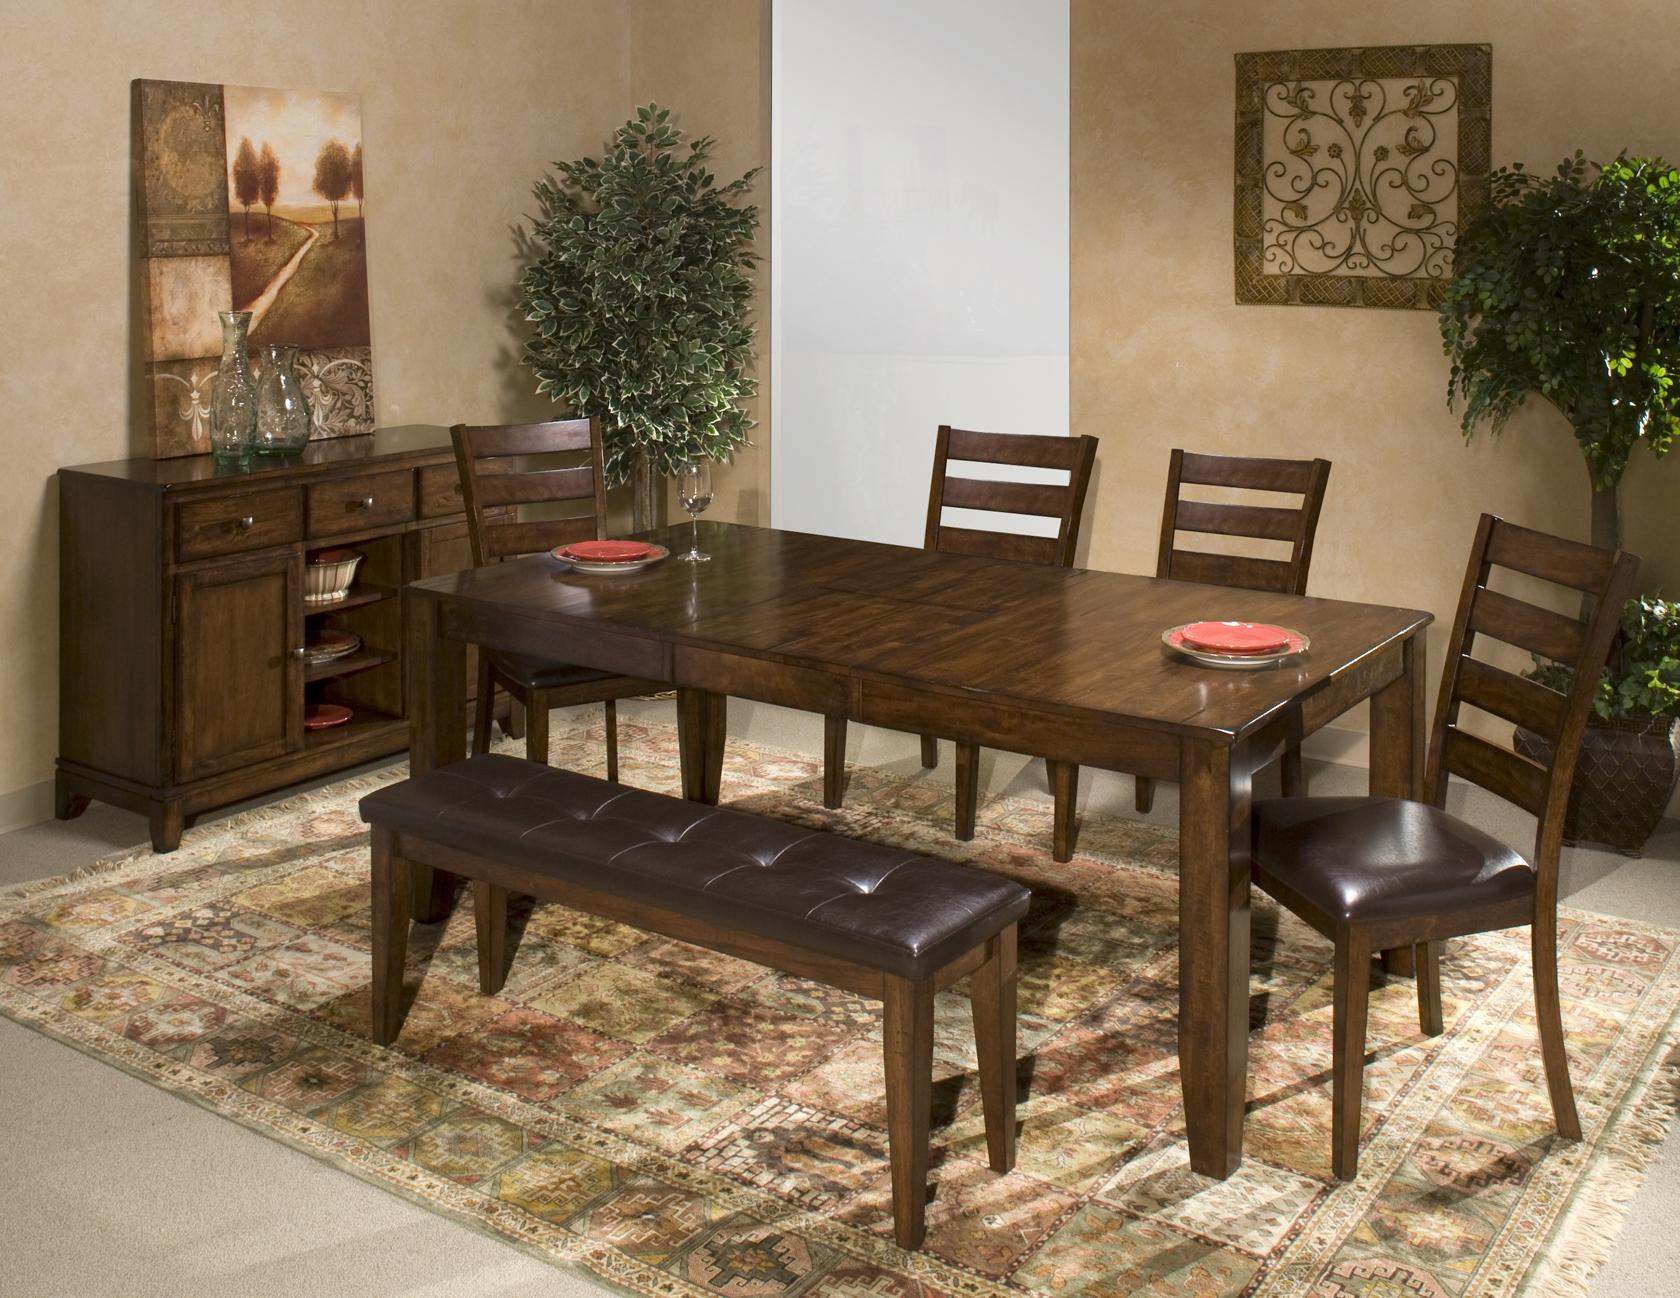 6 Piece Mango Wood Dining Room Set by Intercon | Wolf and Gardiner ...